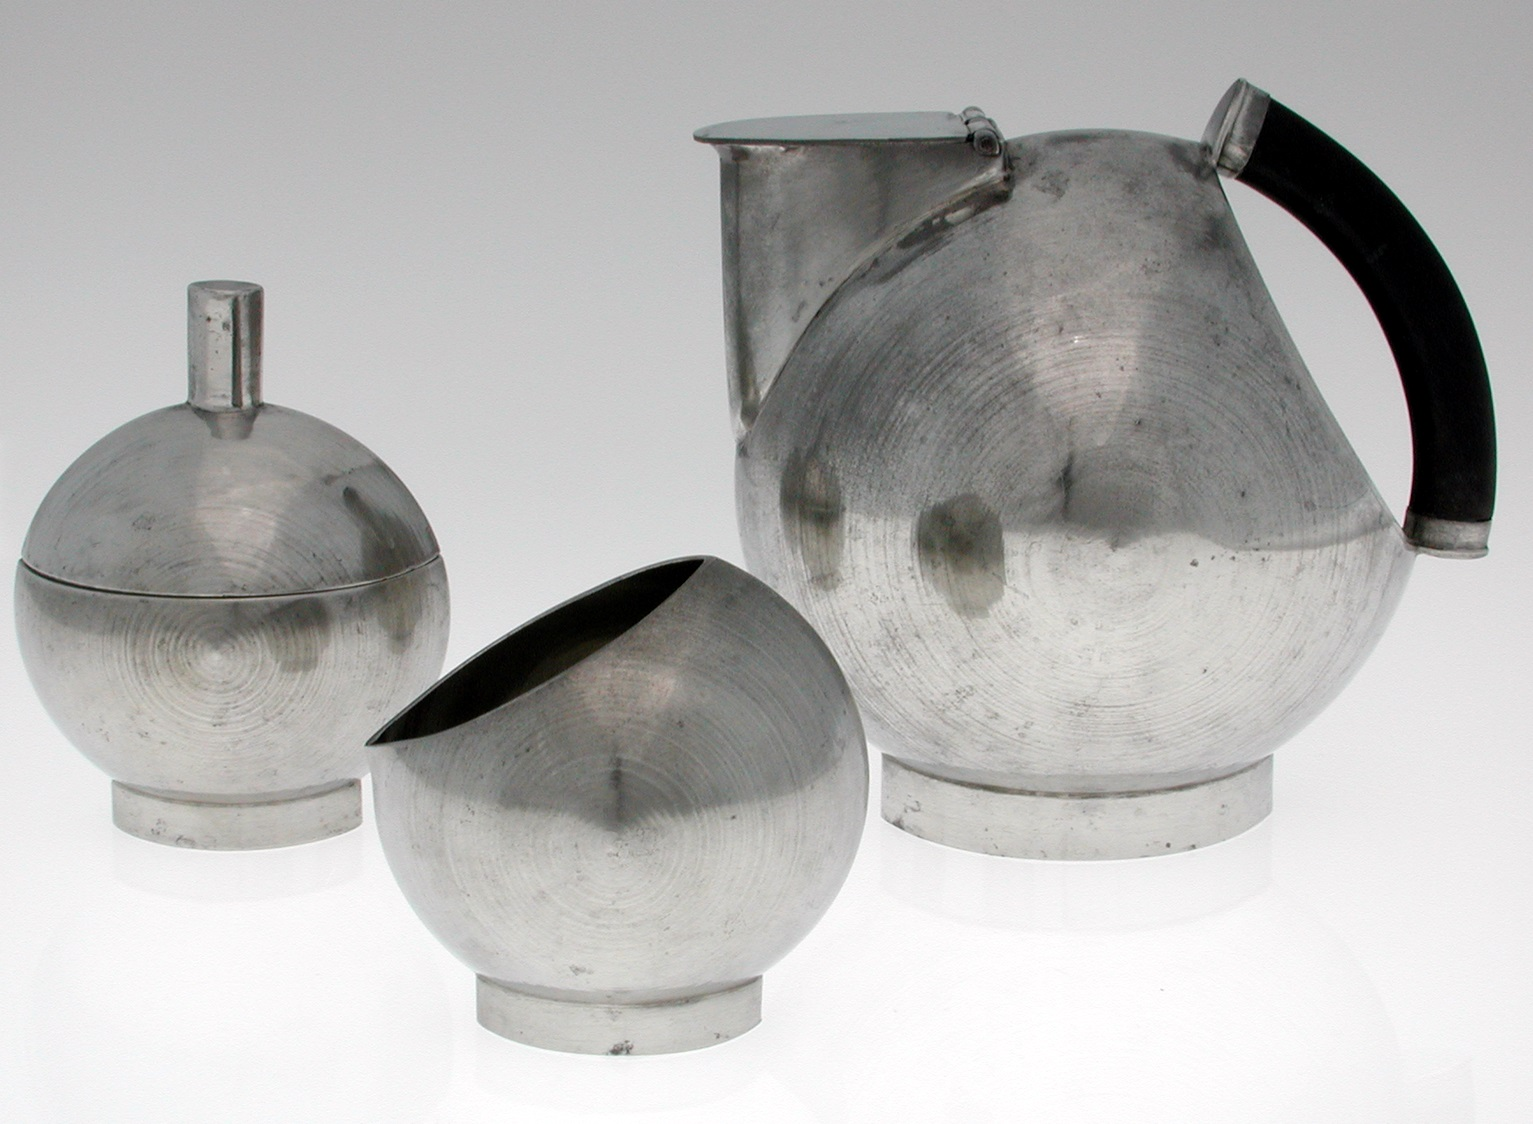 Brushed-metal coffee service. Spherical coffeepot has an arc-shaped handle